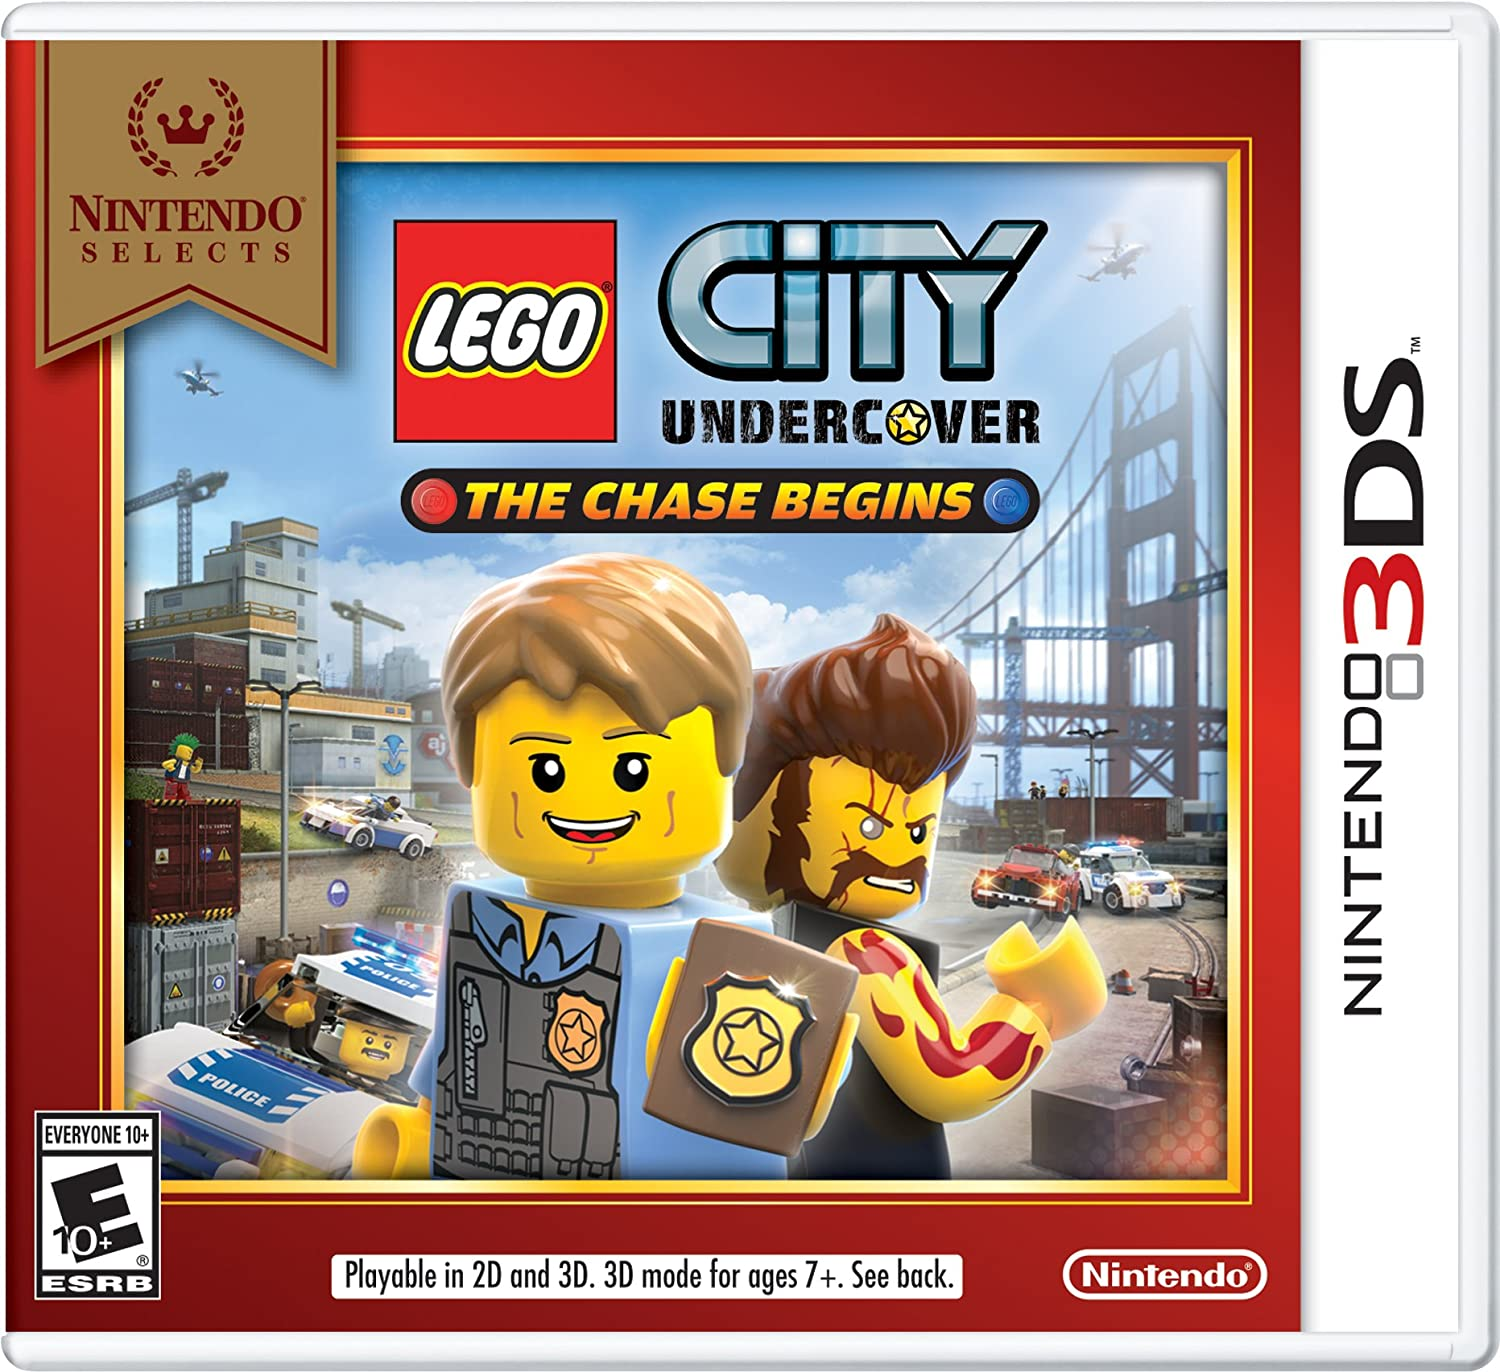 Amazon Com Nintendo Selects Lego City Undercover The Chase Begins 3ds Digital Code Video Games